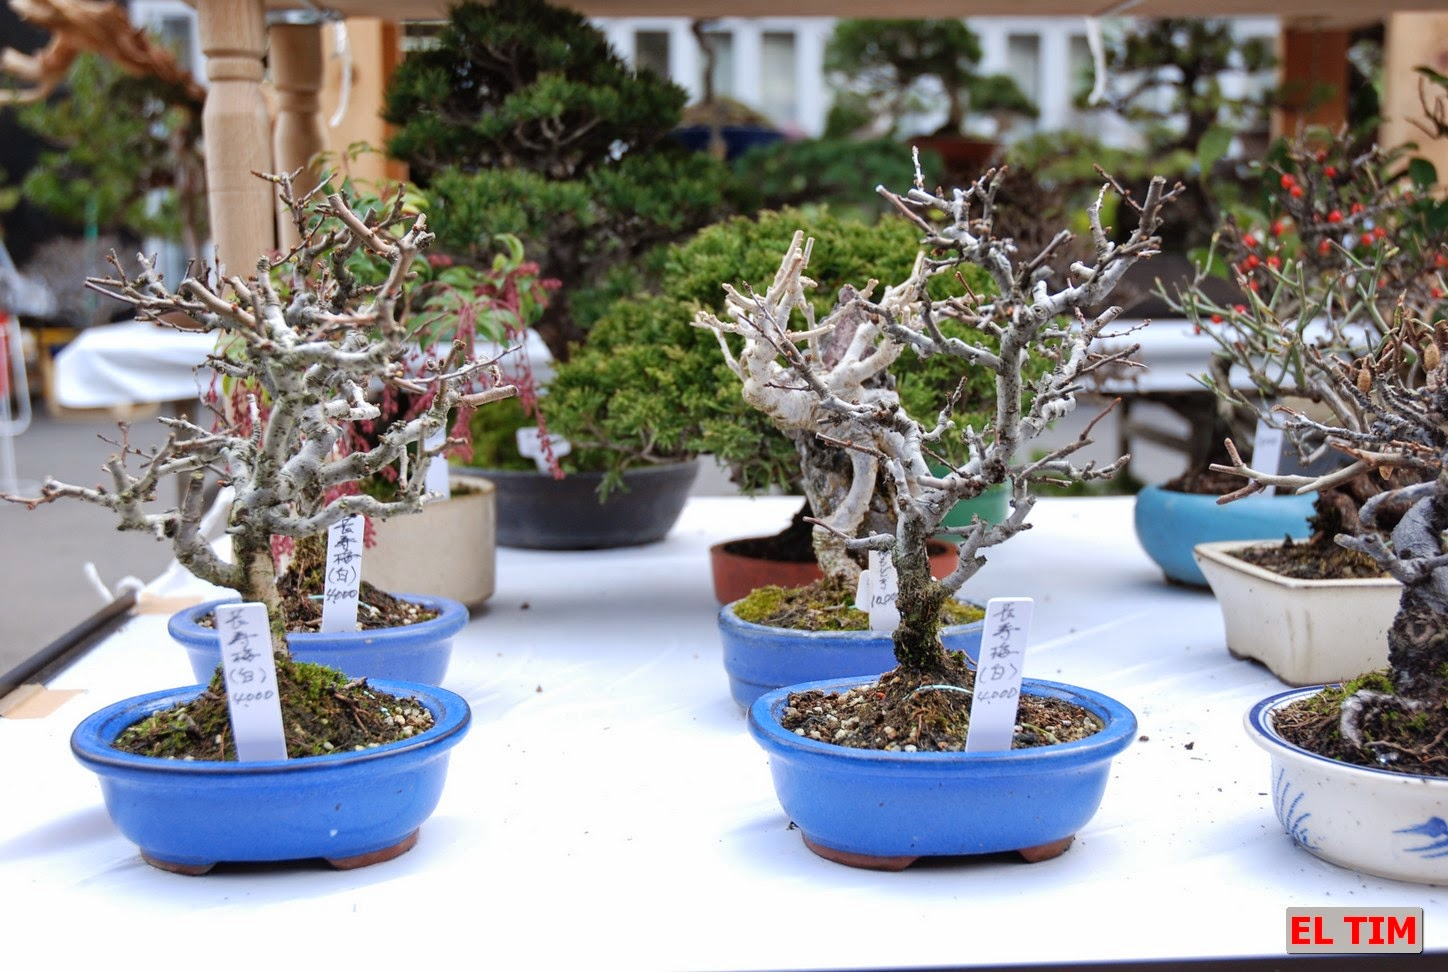 El Tim Bonsai: 27/04/14 - 4/05/14